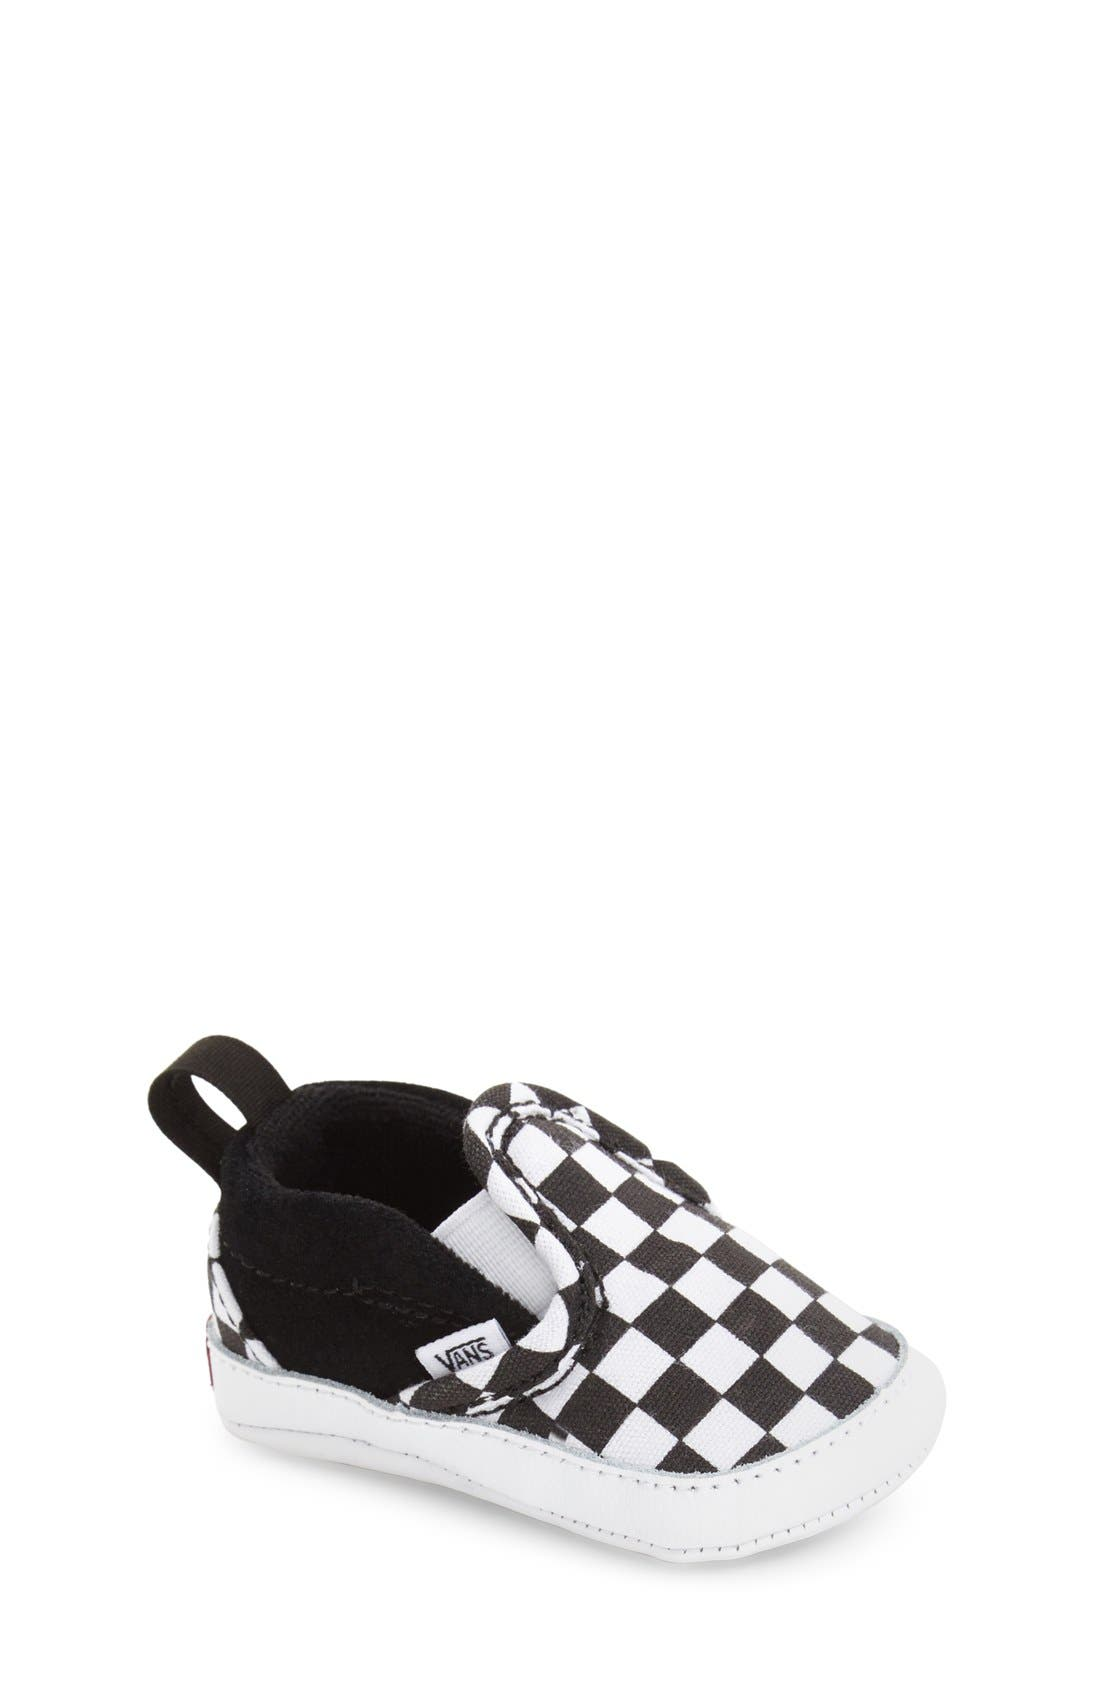 Slip-On Crib Shoe,                         Main,                         color, CHECKER BLACK TRUE WHITE